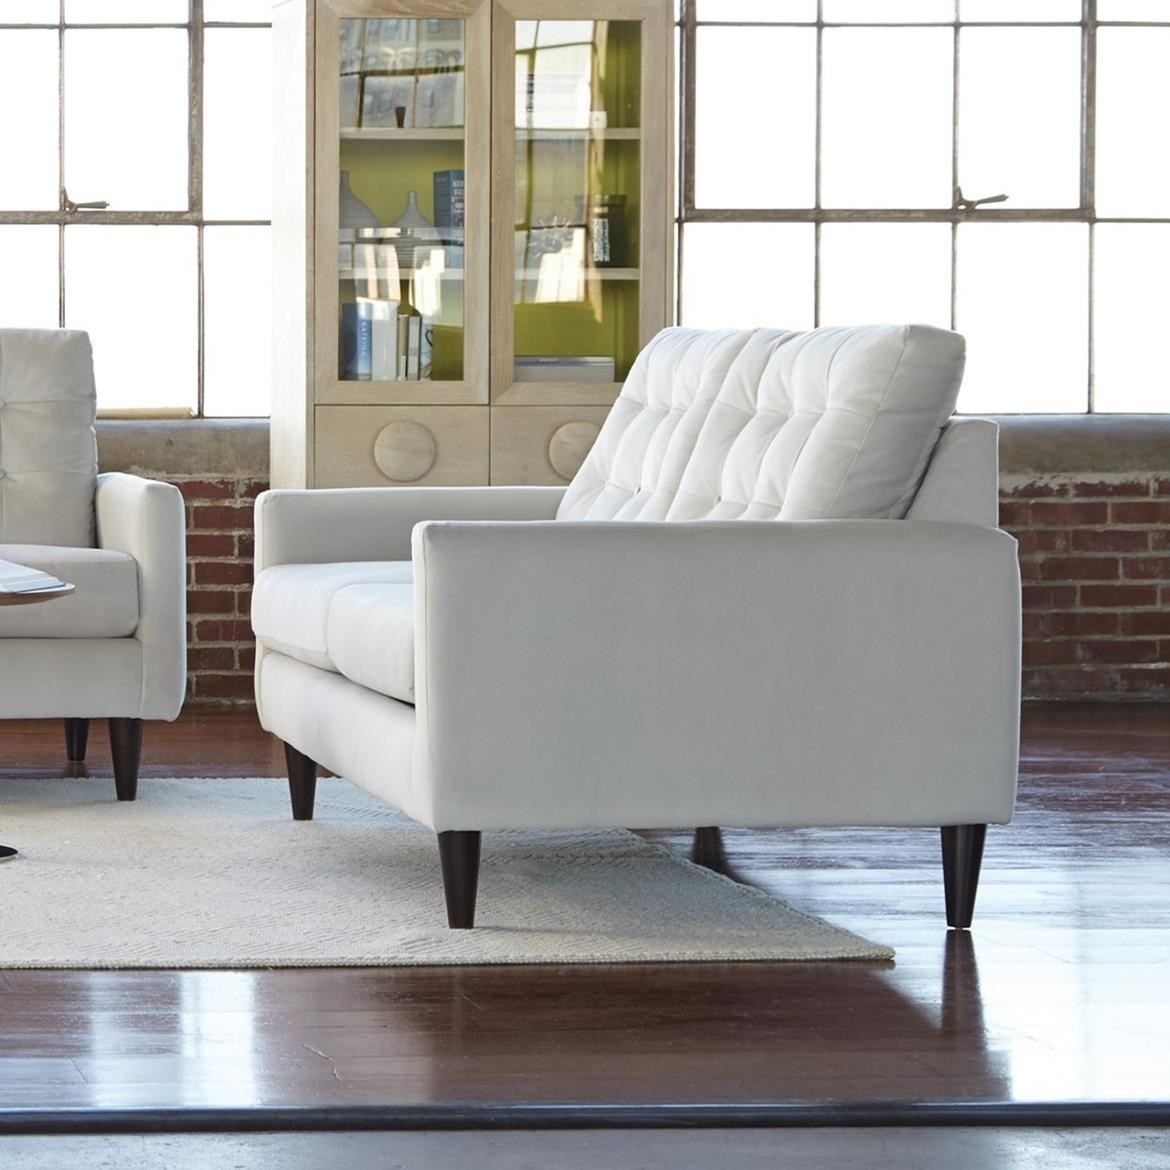 Charmant Jackson Furniture Haley Mid Century Modern Loveseat With Button Tufting